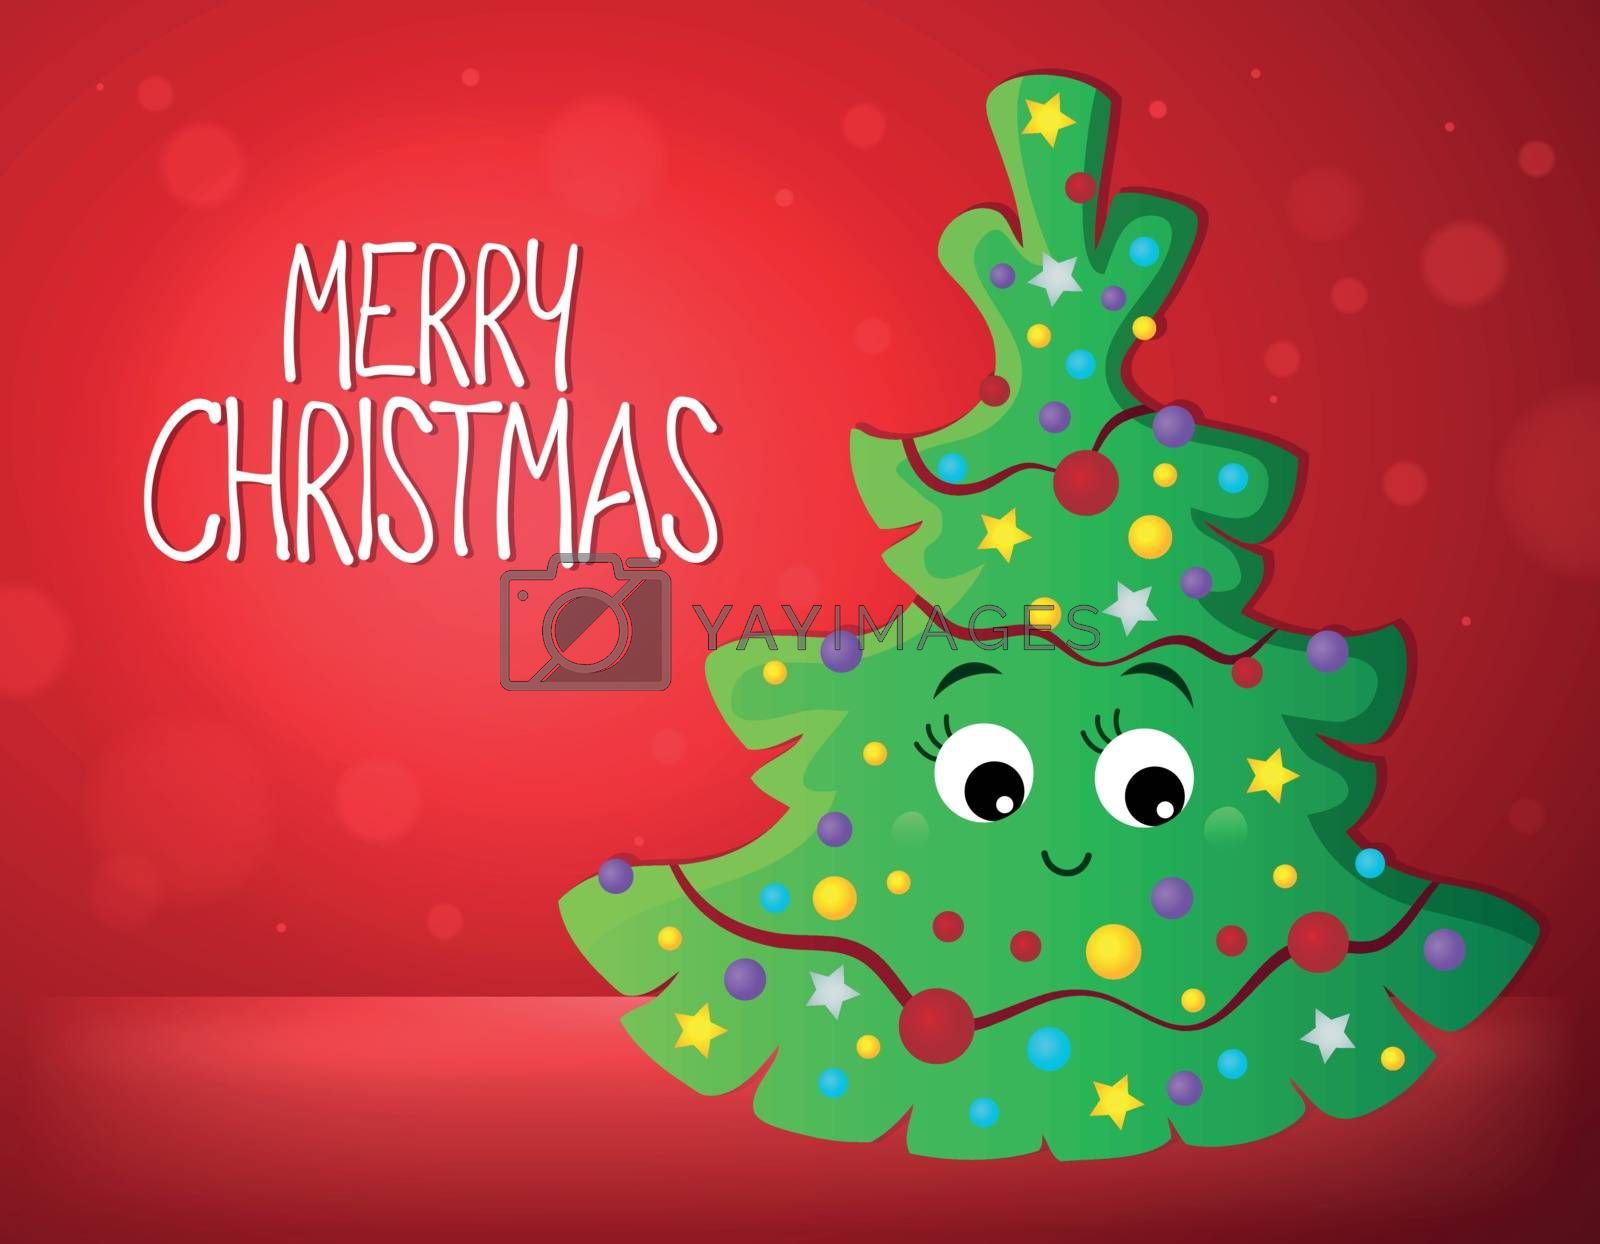 Merry Christmas composition image 1 - eps10 vector illustration.